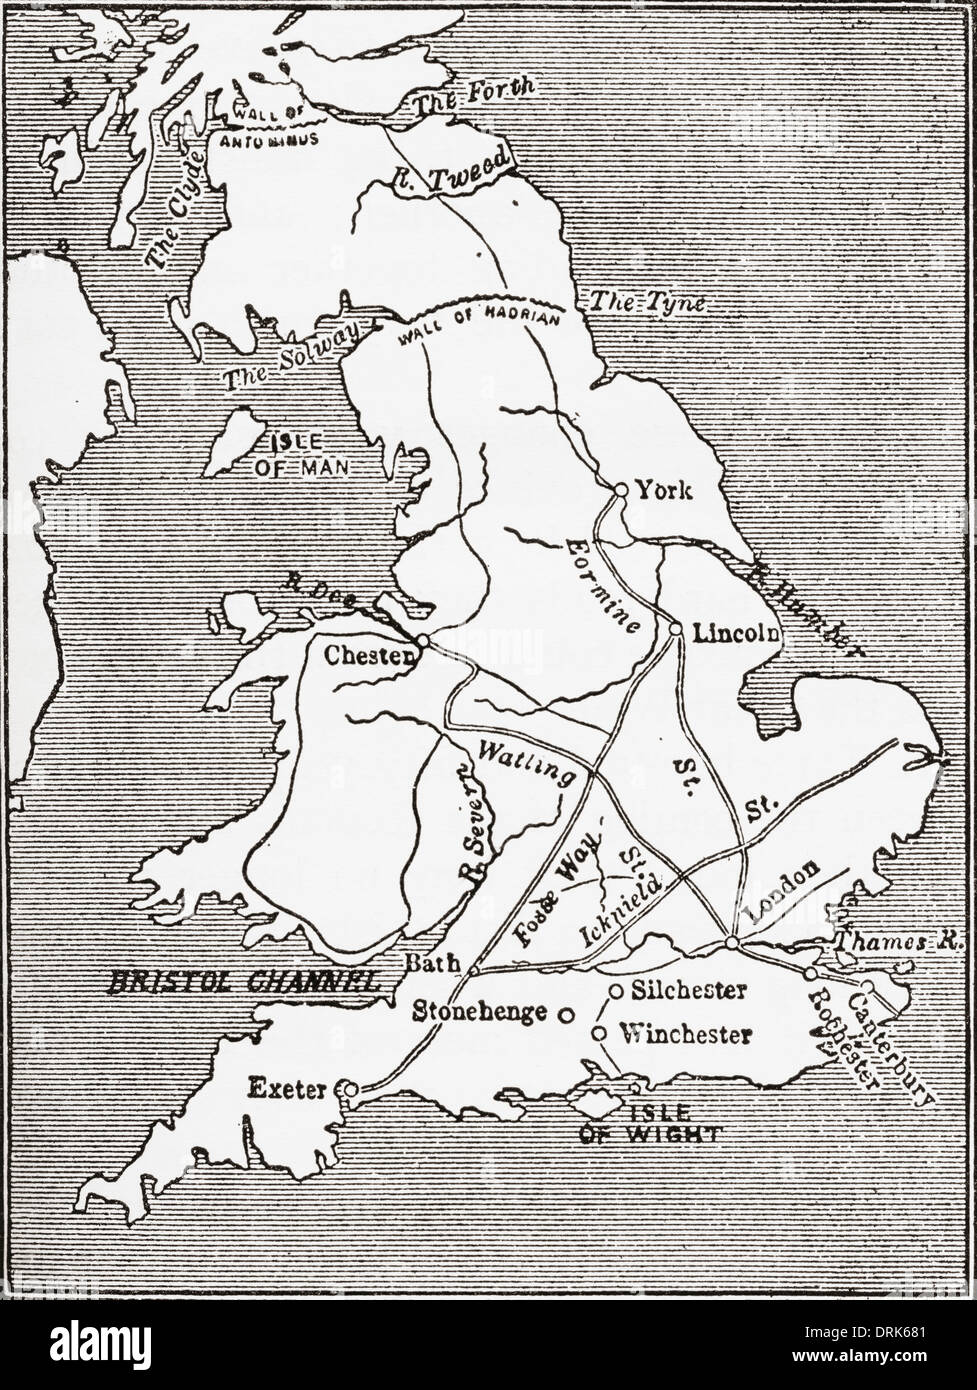 Map showing the Roman roads in Britain. - Stock Image